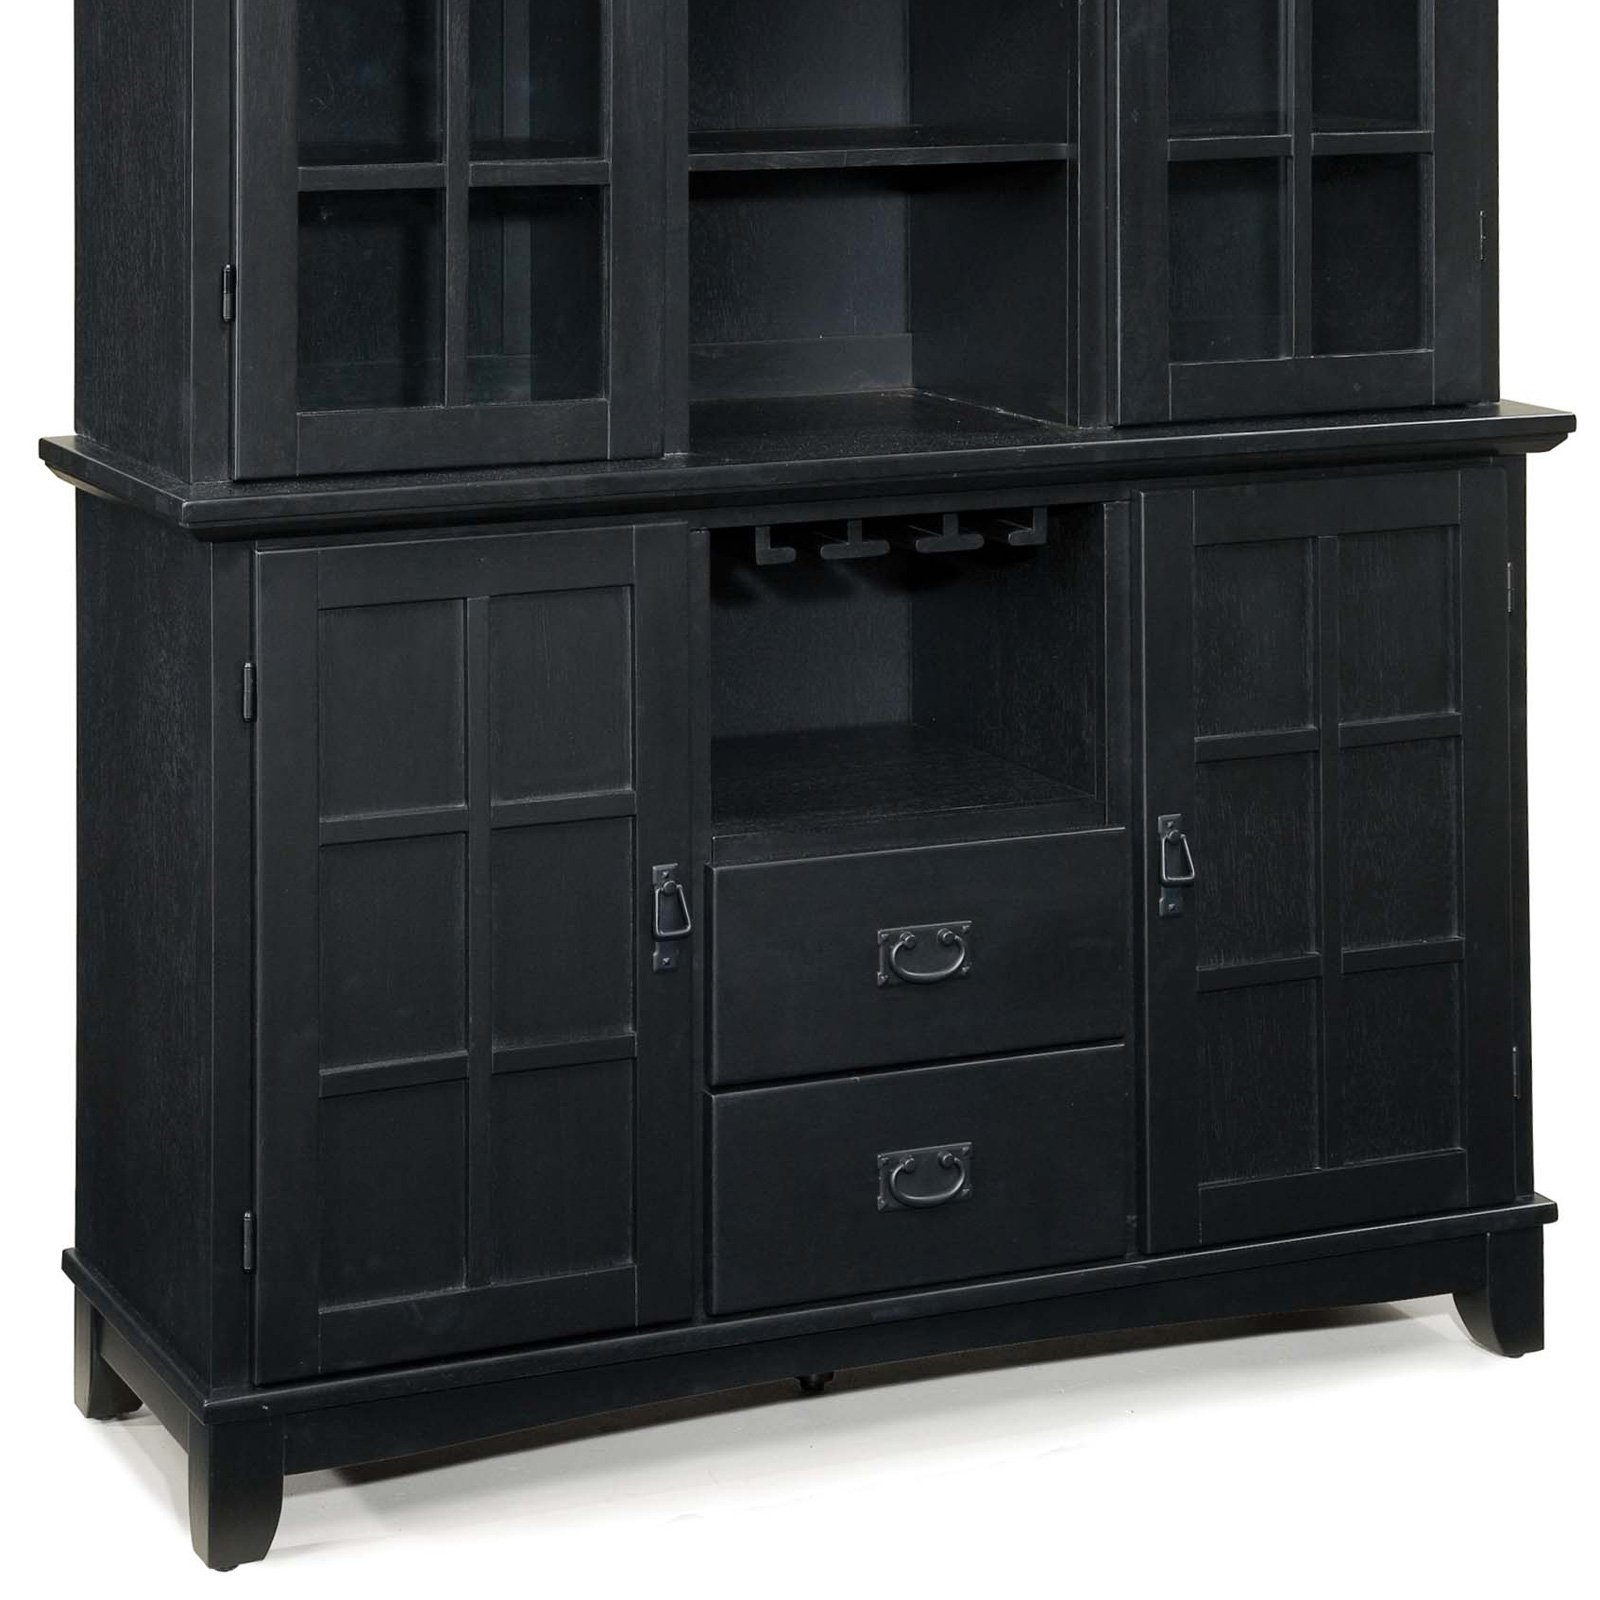 Home Styles Arts & Crafts Buffet, Ebony by Home Styles